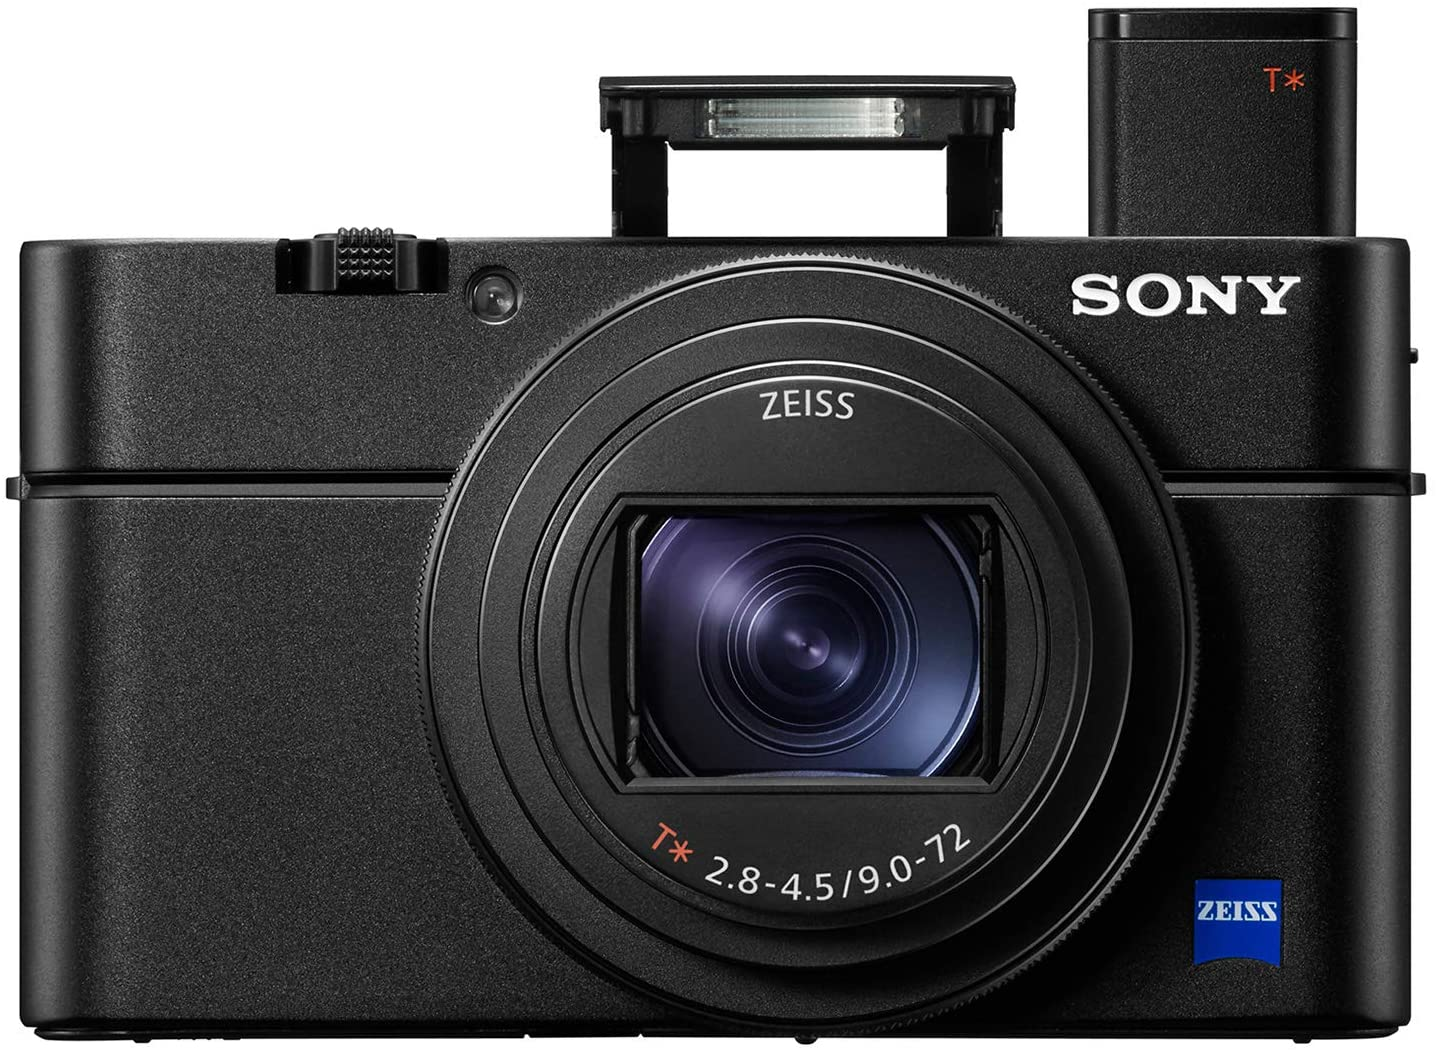 Advanced Eye AF System For Concert Shooting Camera | Sony RX-100